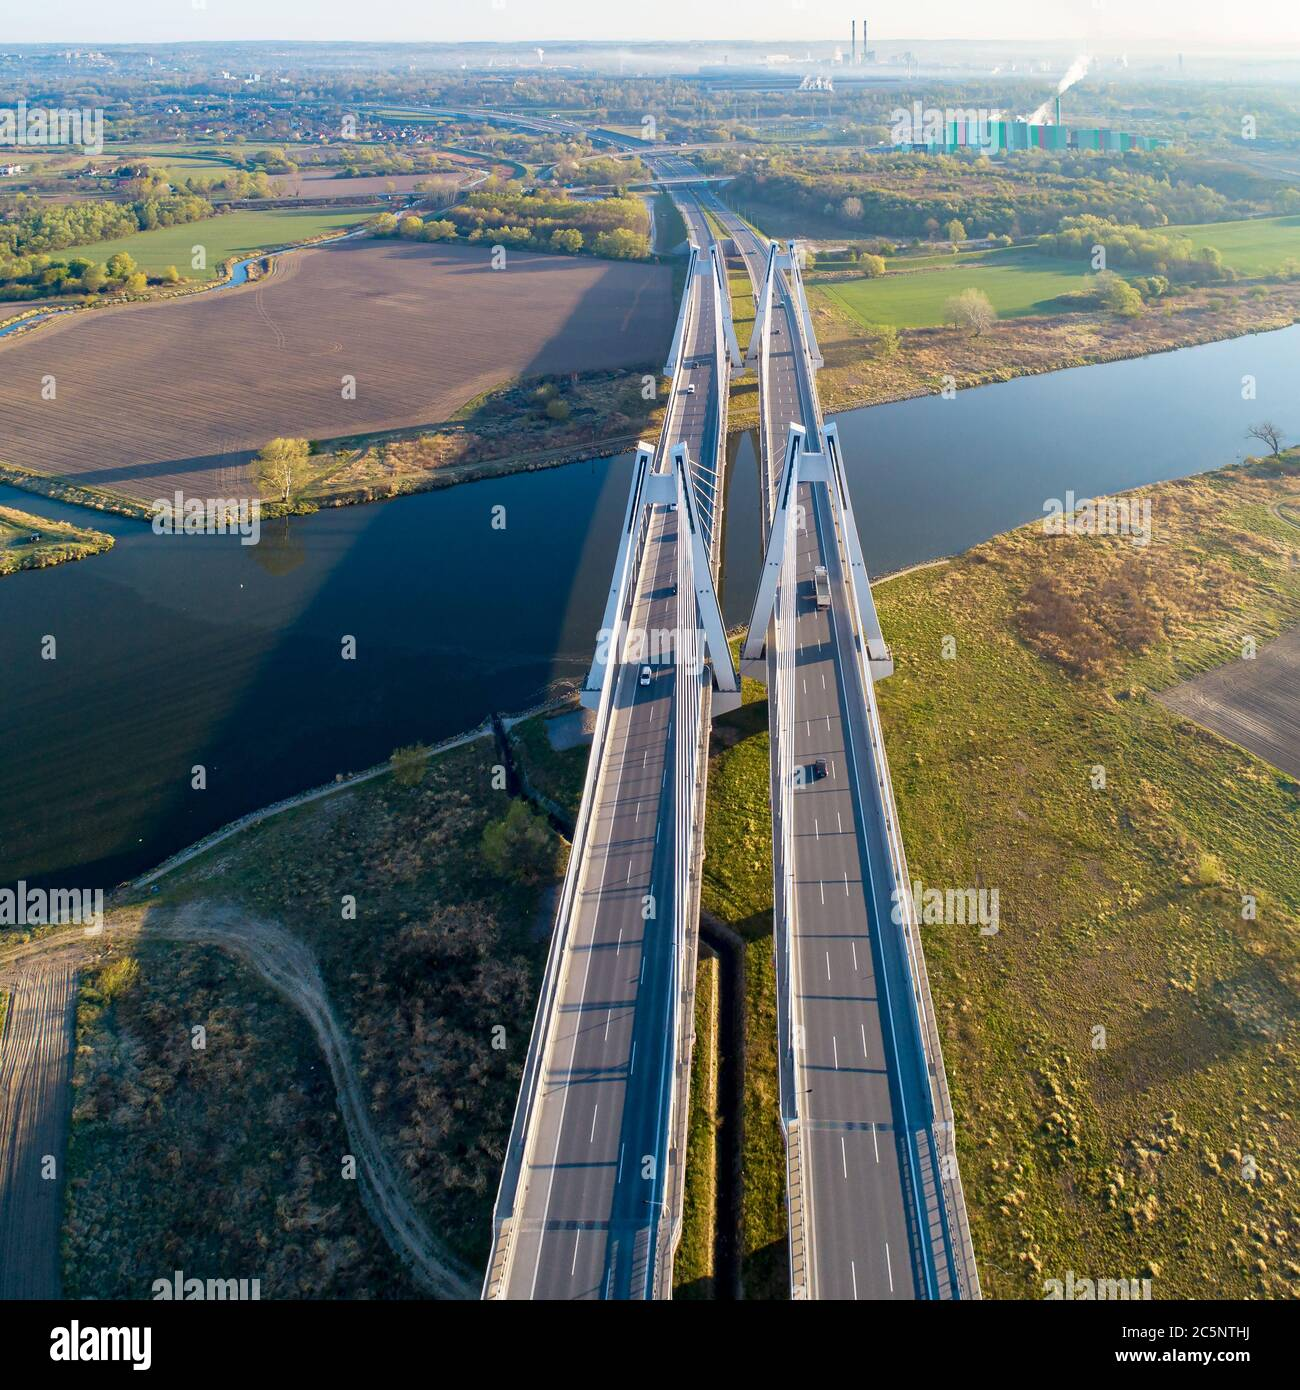 New modern double cable-stayed bridge with wide three-lane roads over Vistula River in Krakow, Poland. Part of the ring road around Krakow. Aerial vie Stock Photo